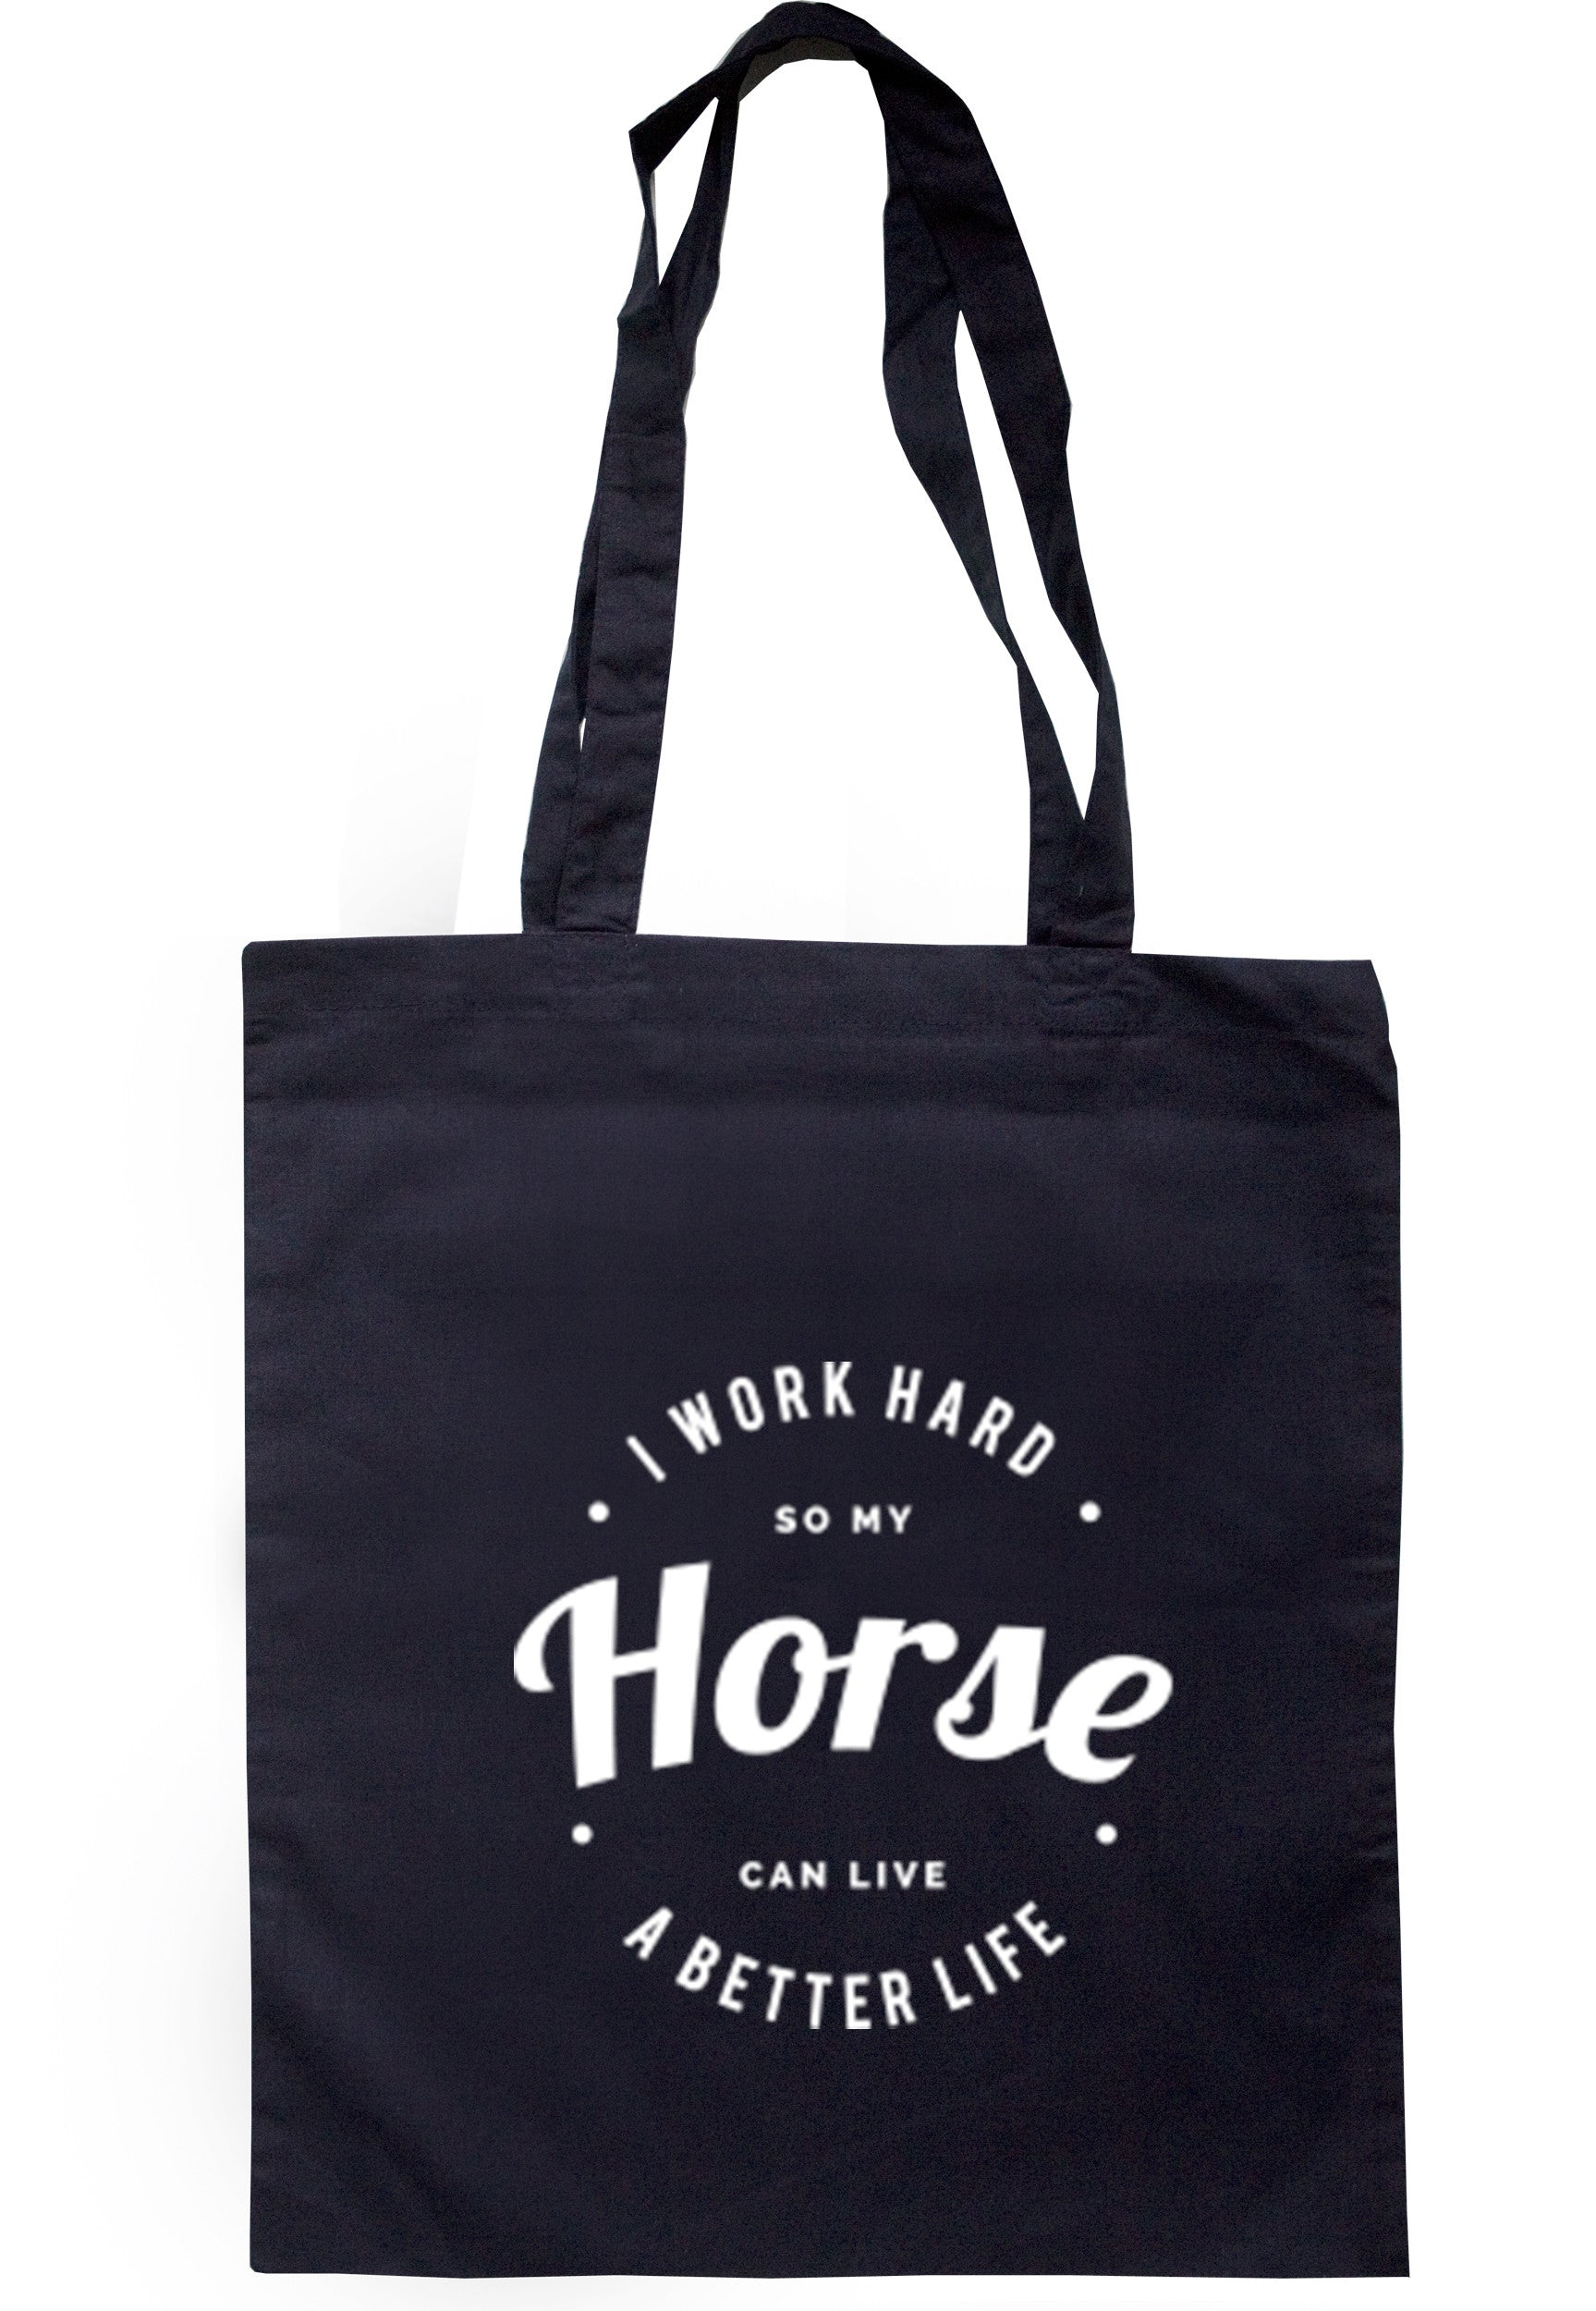 I Work Hard So My Horse Can Live A Better Life Tote Bag TB0235 - Illustrated Identity Ltd.